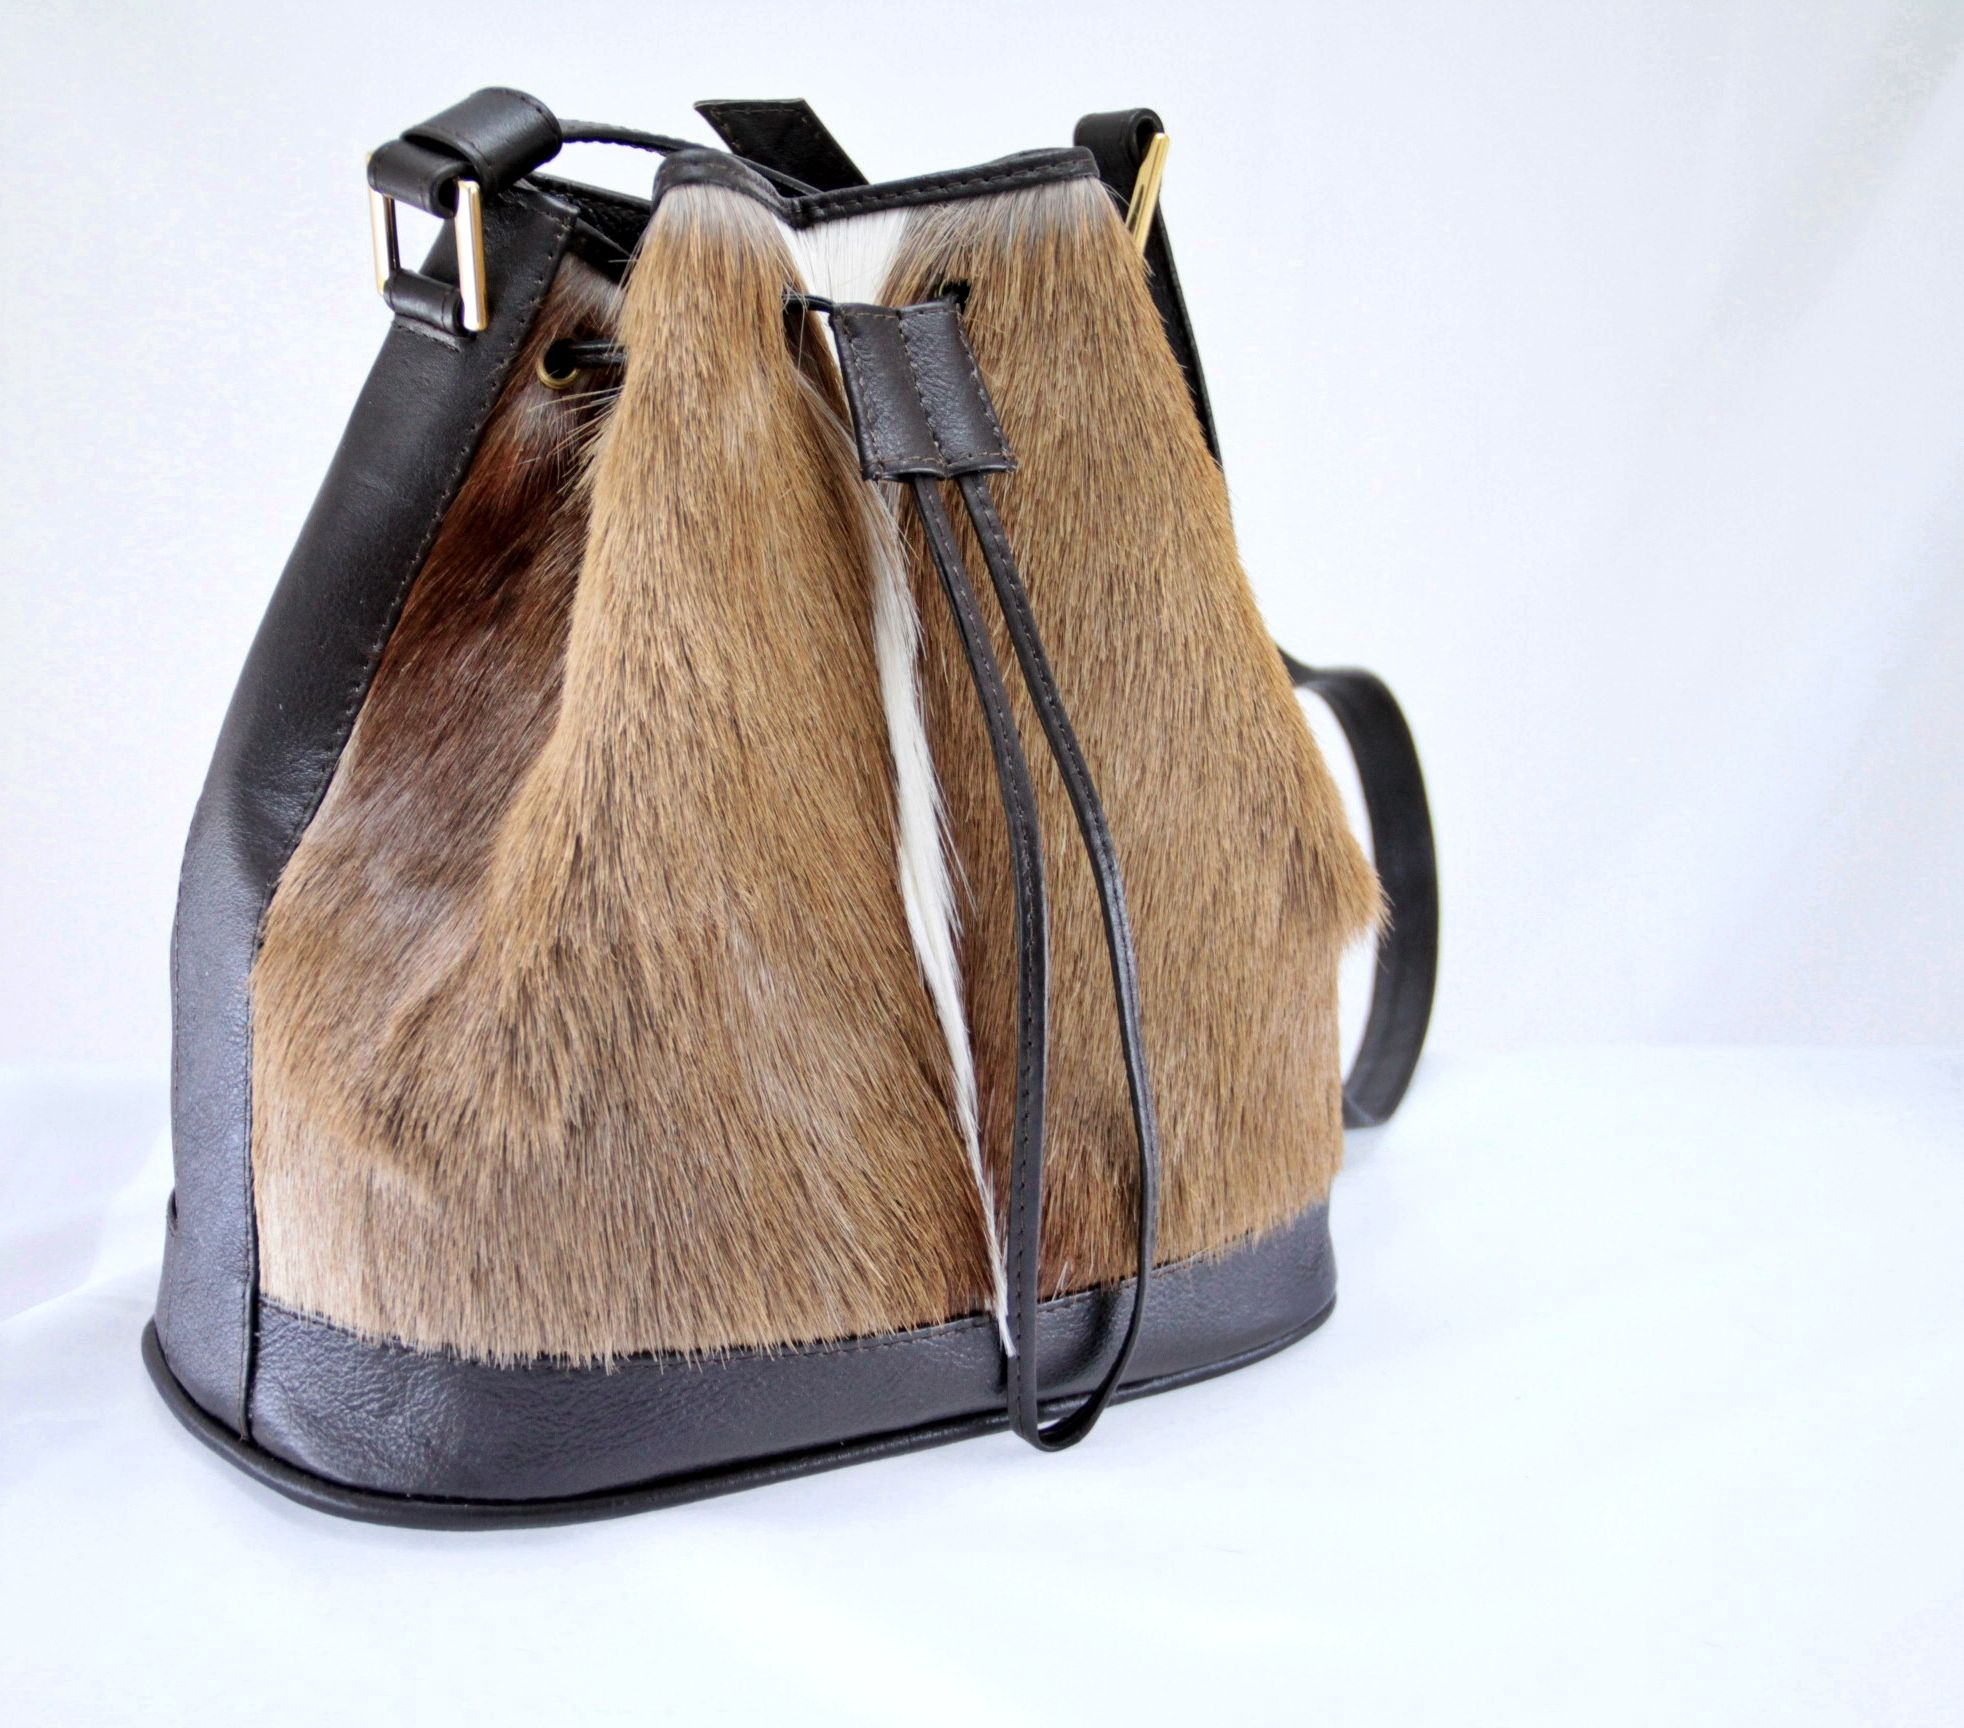 Corbeau 818 In Springbok Hide Bucket Bag Made With Ostrich Leather Handcrafted Just For You By Cape Town Fashion New Handbag